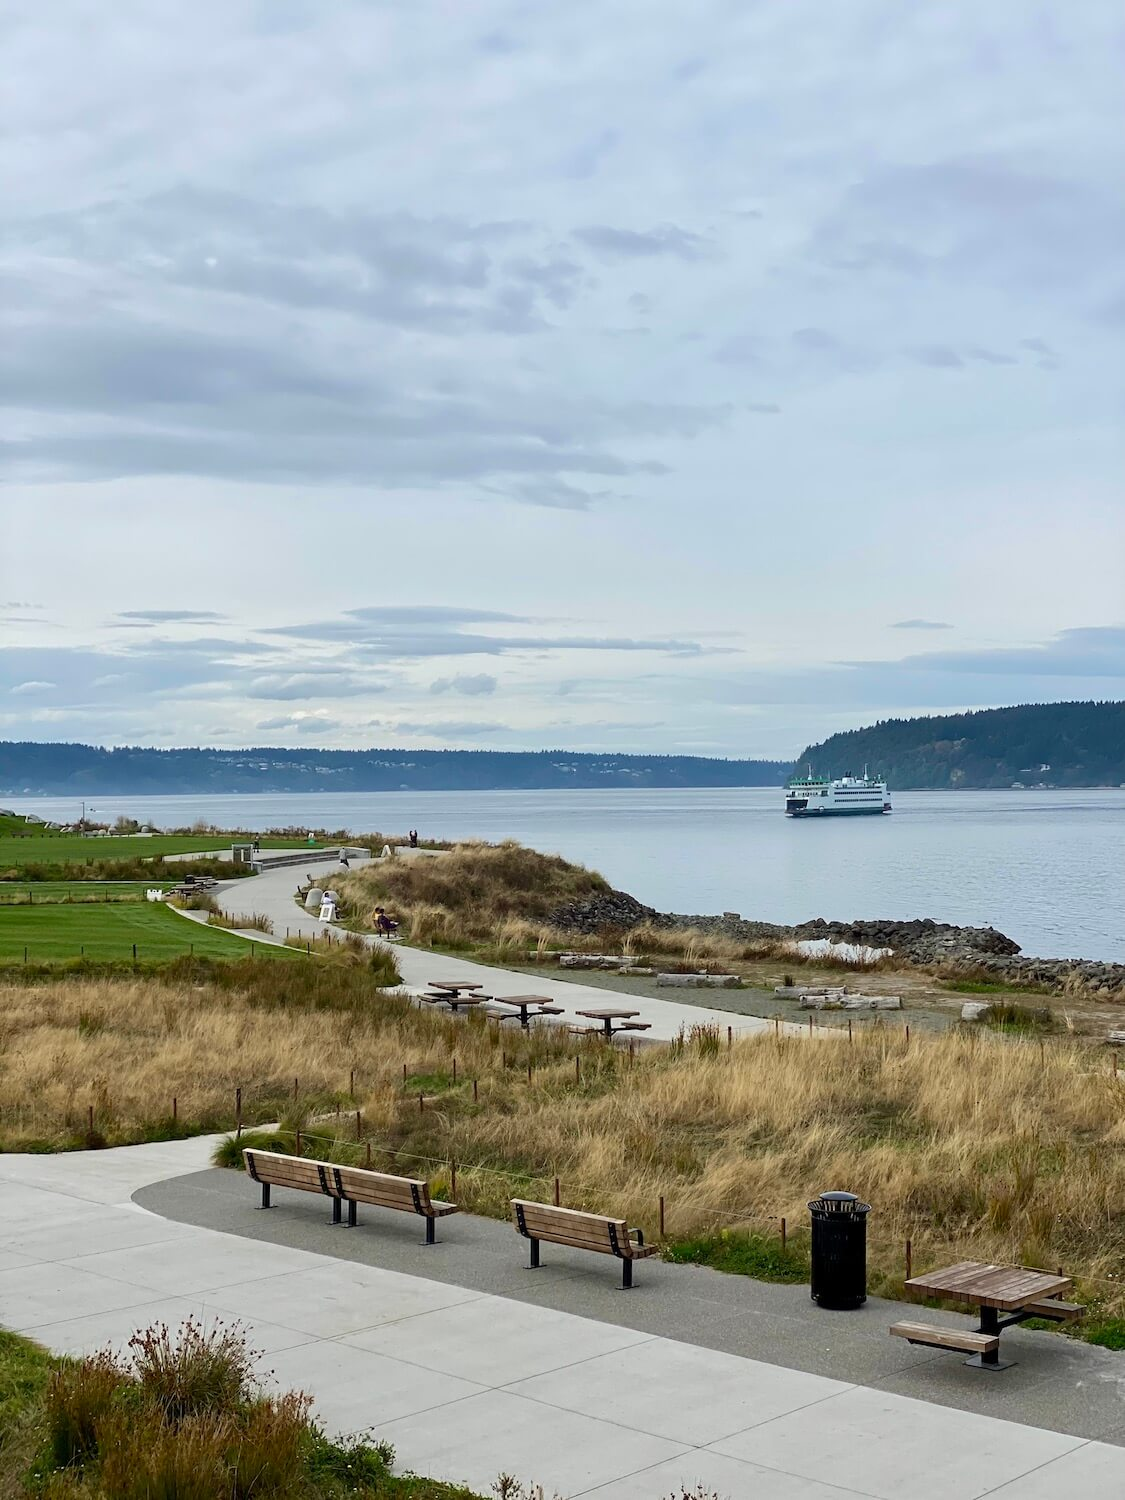 Dune Peninsula Park offers outstanding beauty to those wishing to have direct eyesight access to the Salish Sea.  Here, a Washington State Ferry travels from Vashon Island to Tacoma Washington.  A paved path winds through wavy seagrass.